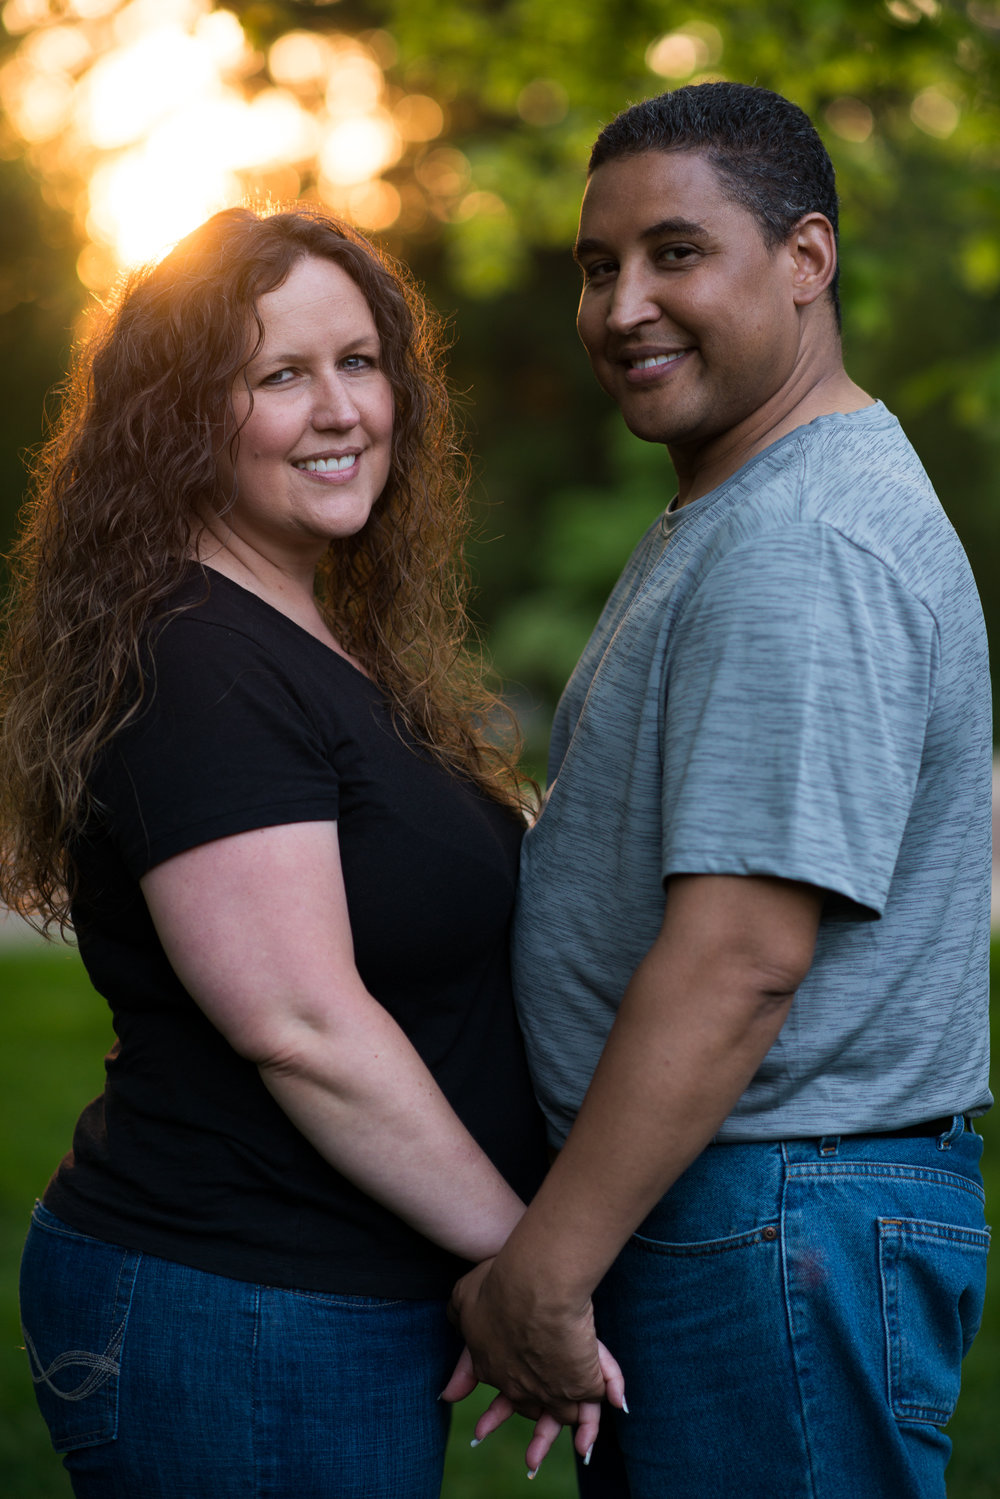 Rhonda+Jeff Engagement Session Previews